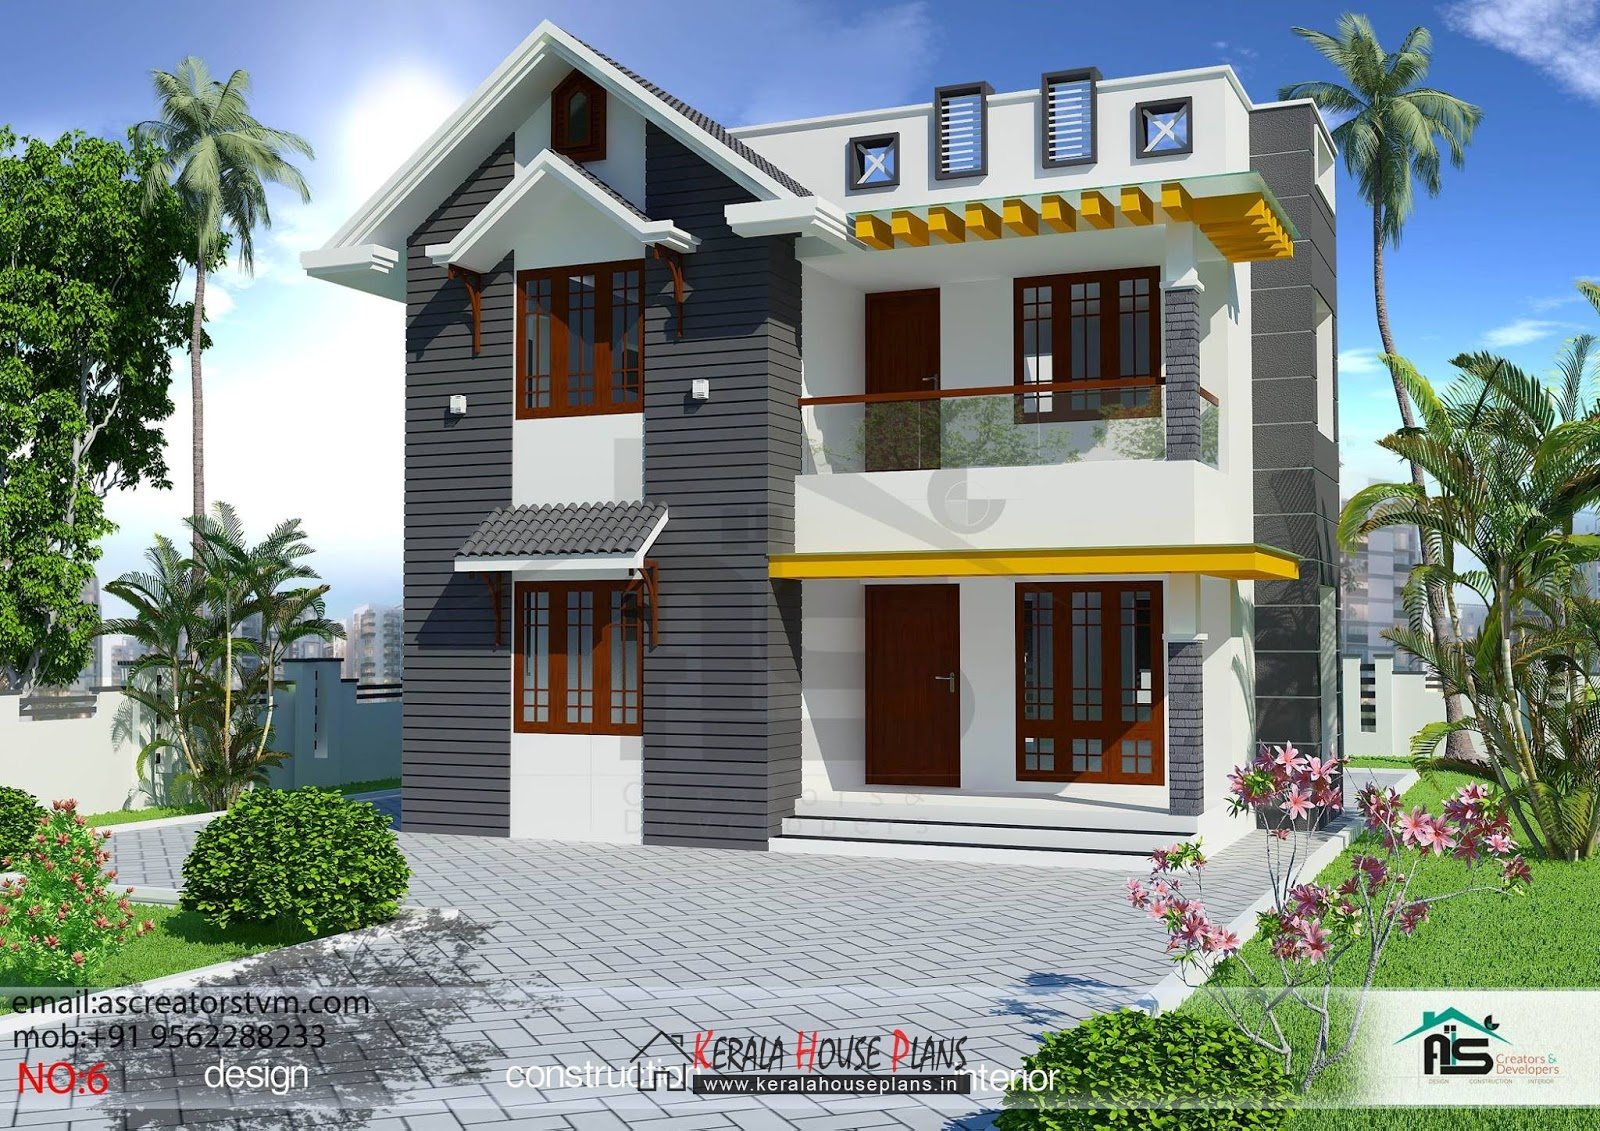 3 bedroom house plans in kerala double floor kerala